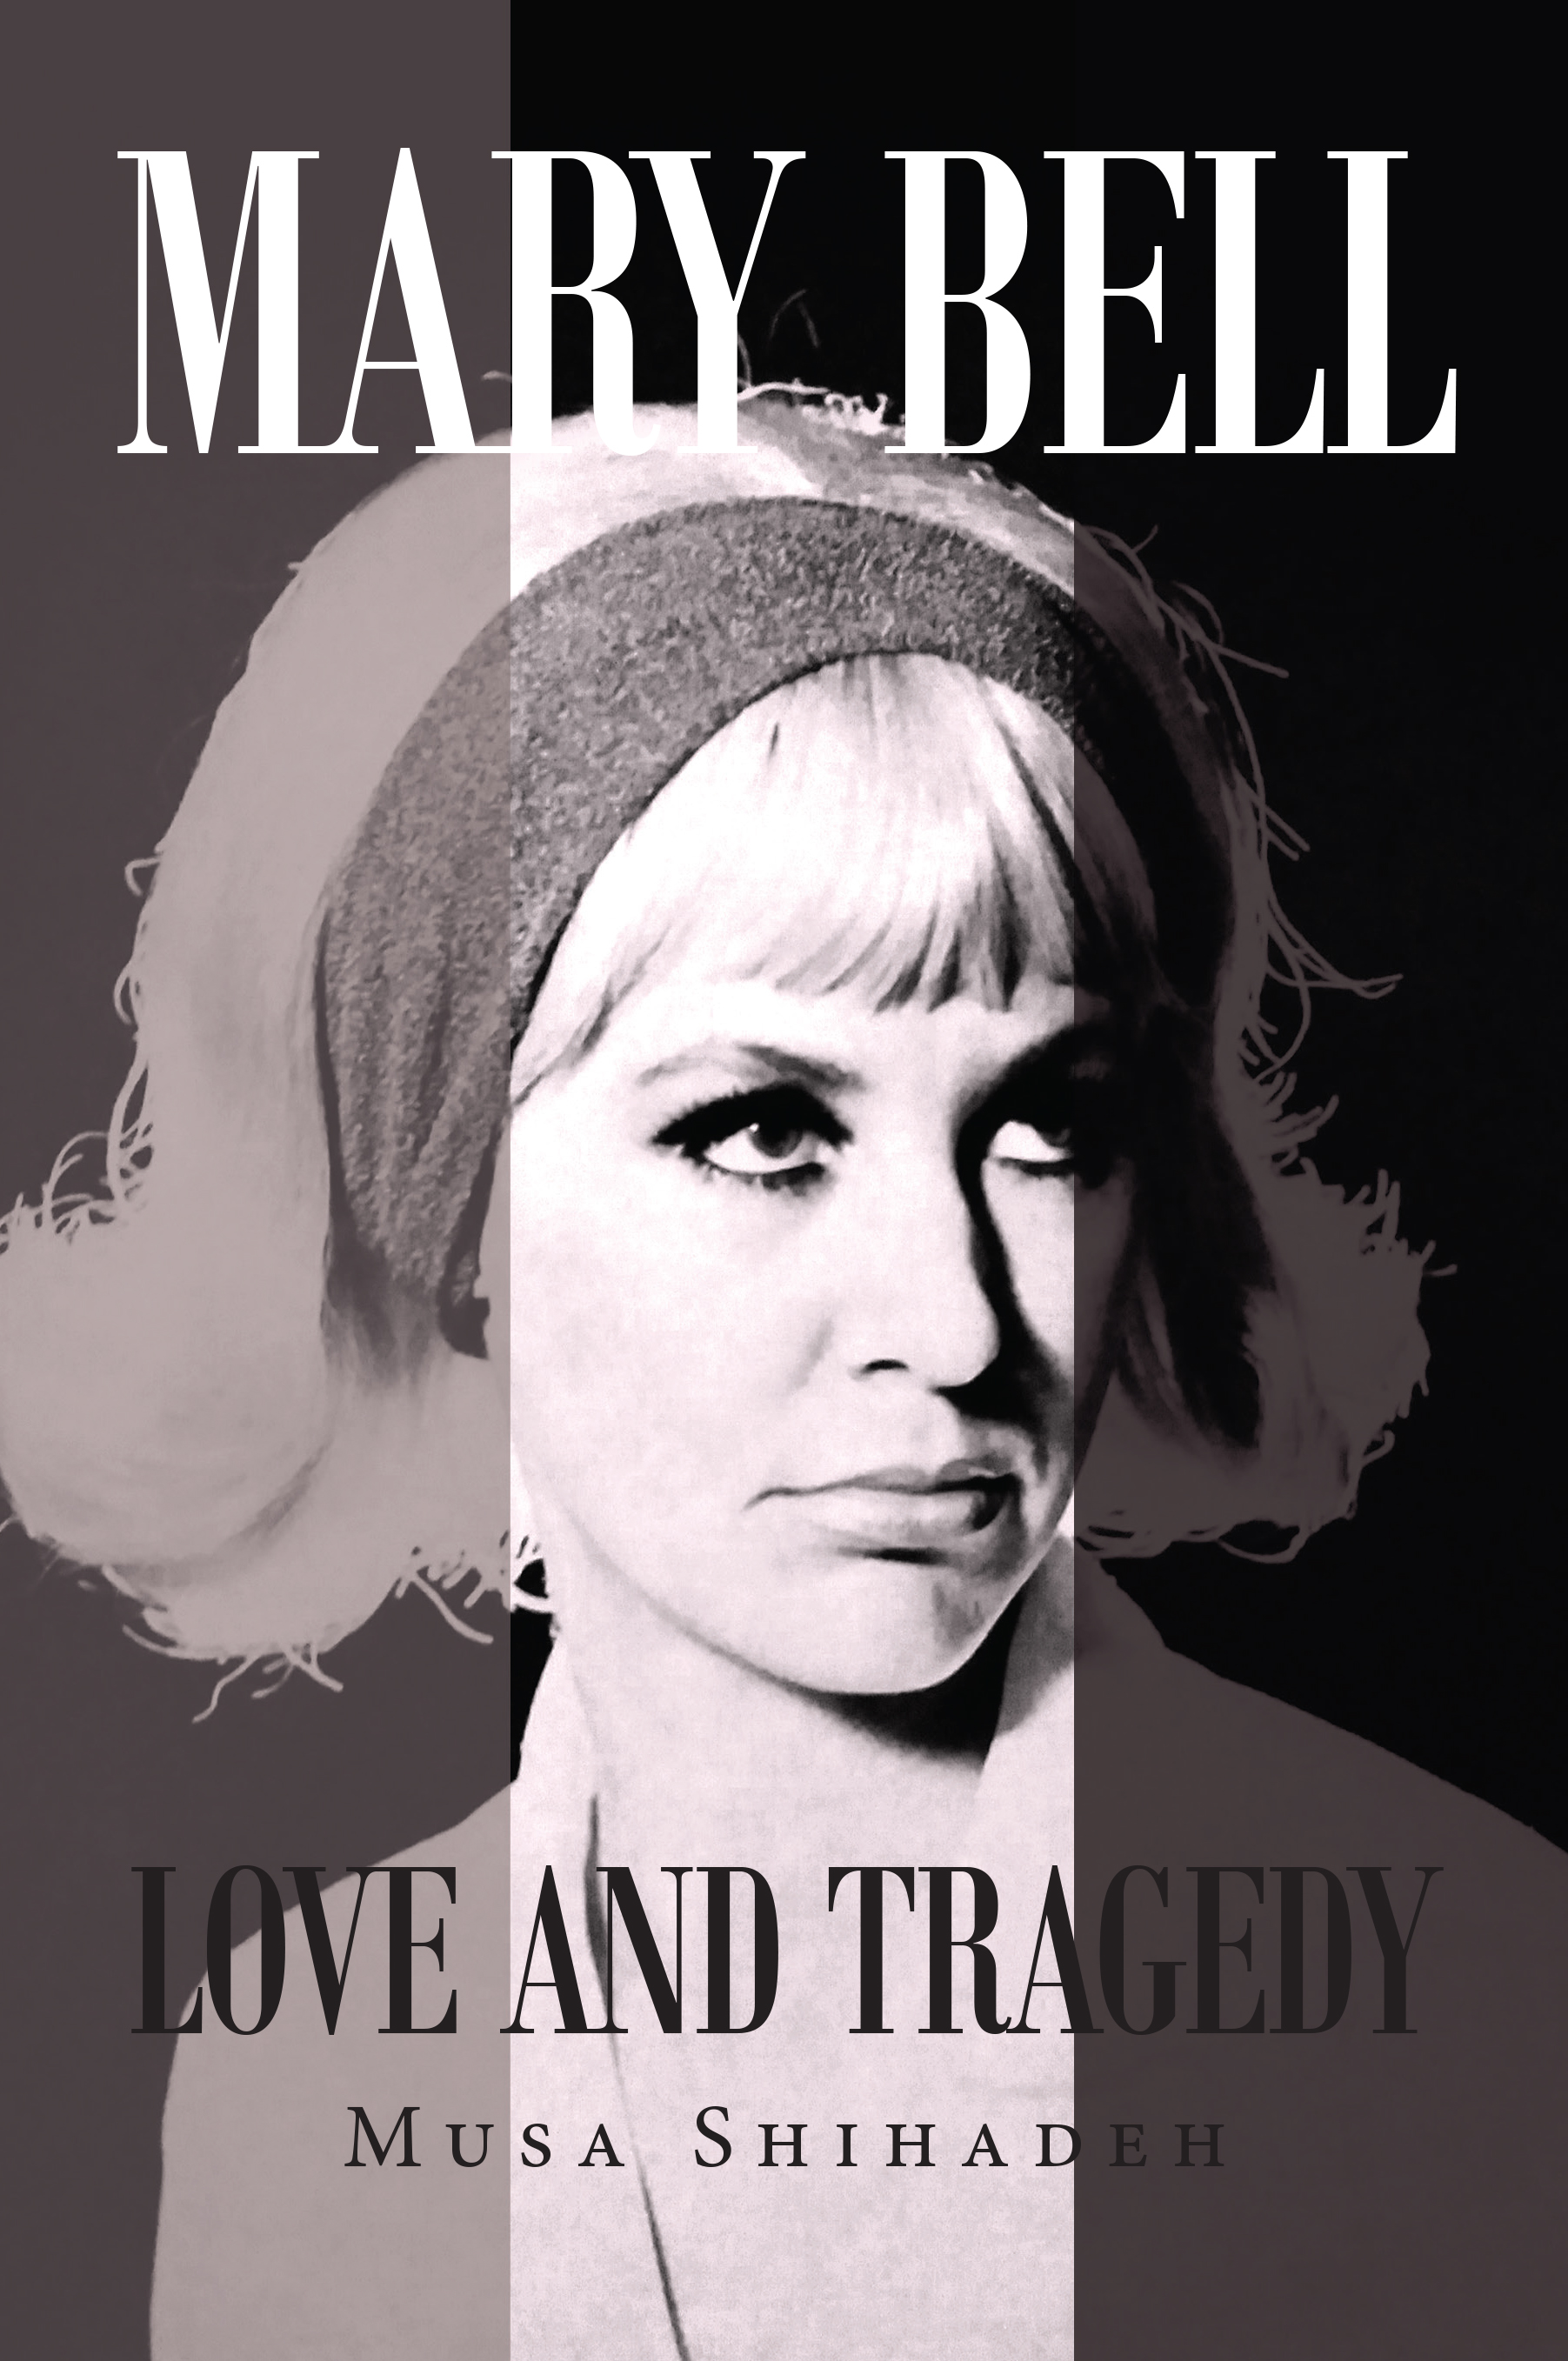 Mary Bell: Love and Tragedy by Musa Shihadeh